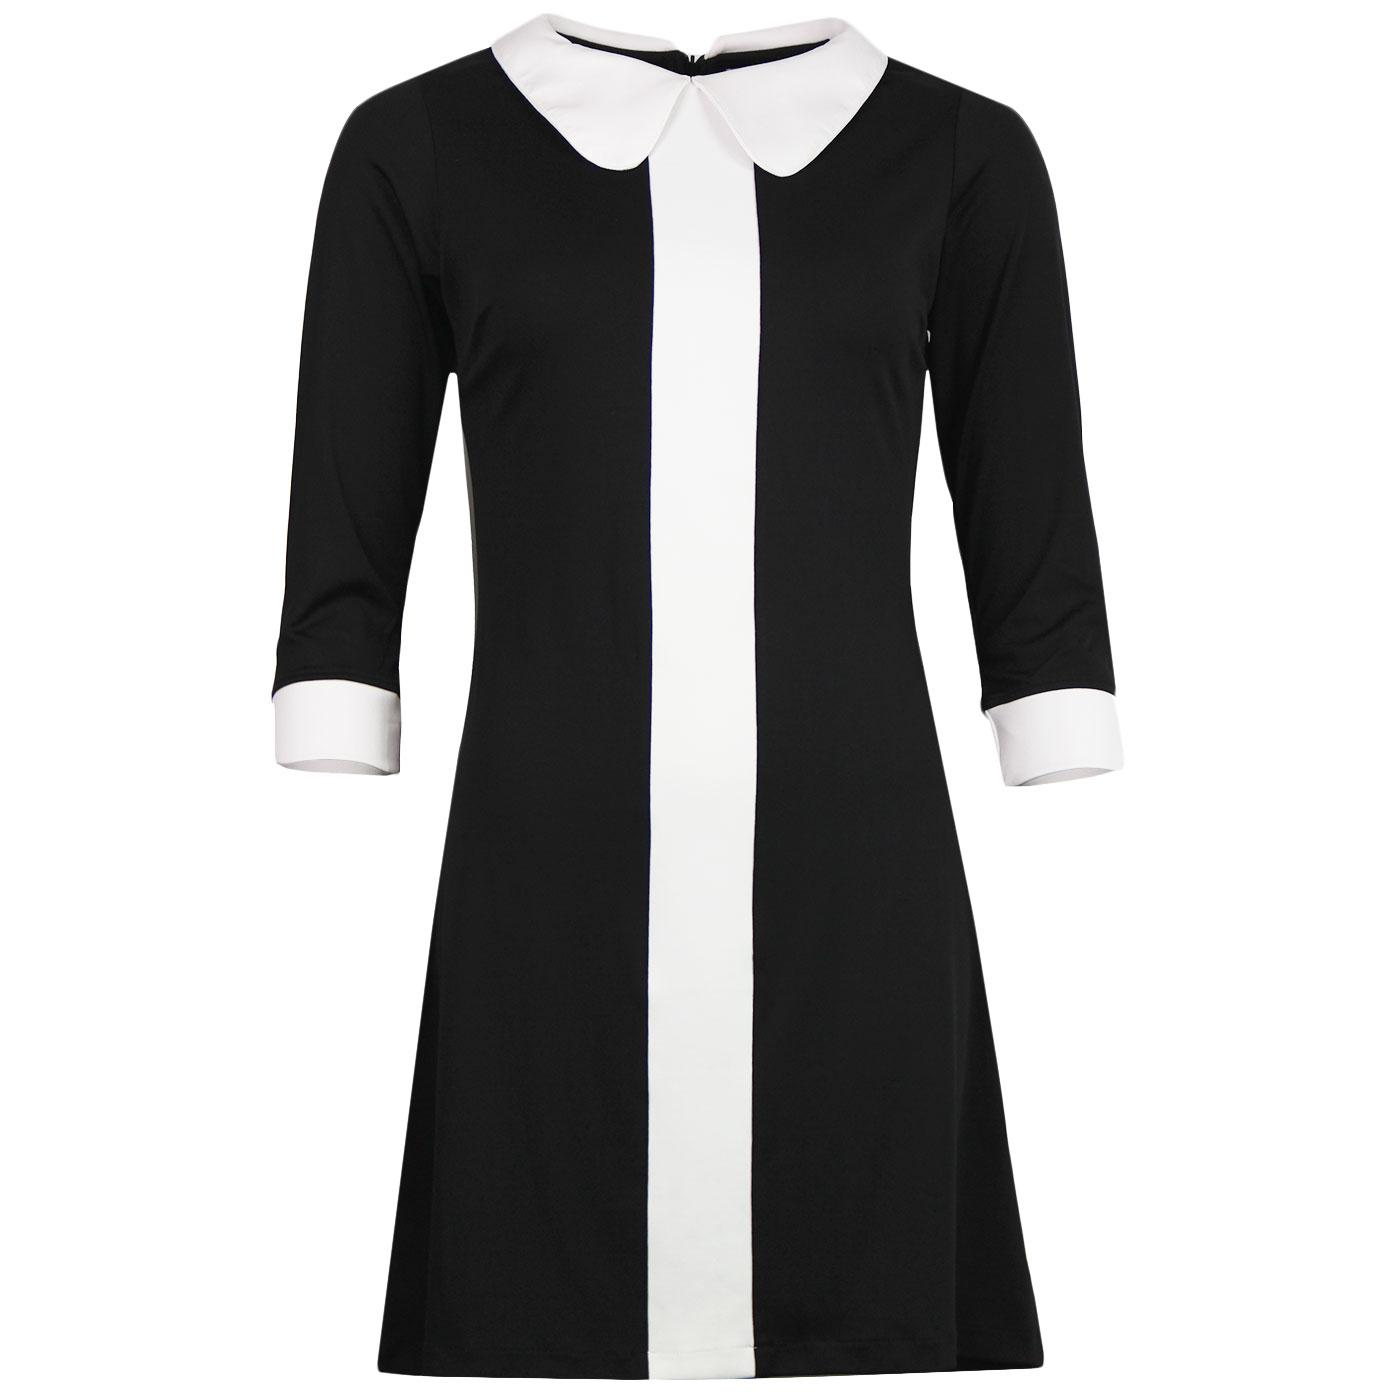 Madcap England 1960s Mod Stripe Panel Collar Dress in Black and White